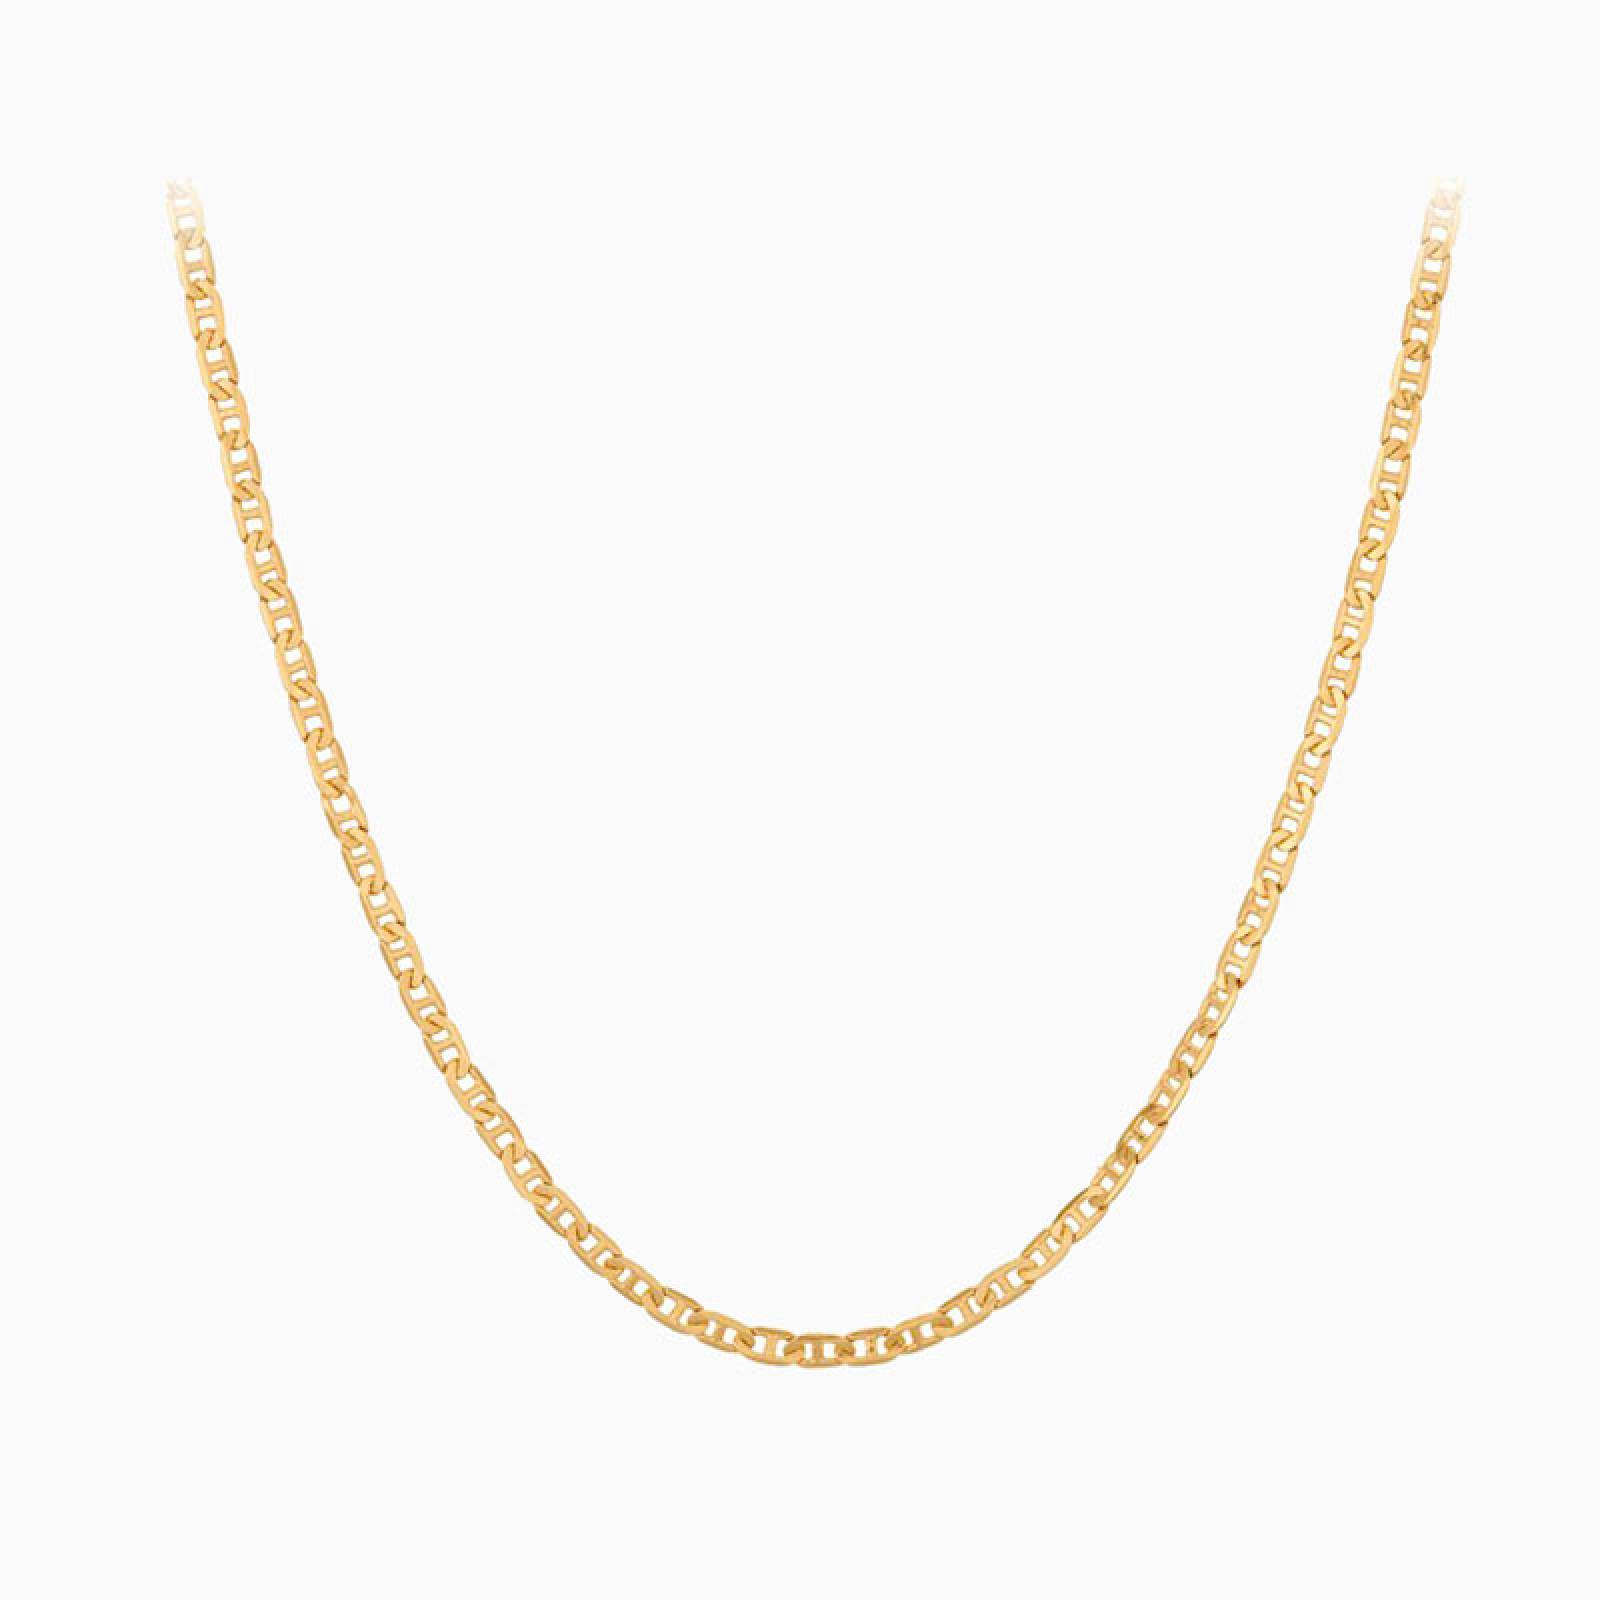 Gold Therese Necklace By Pernille Corydon thumbnails